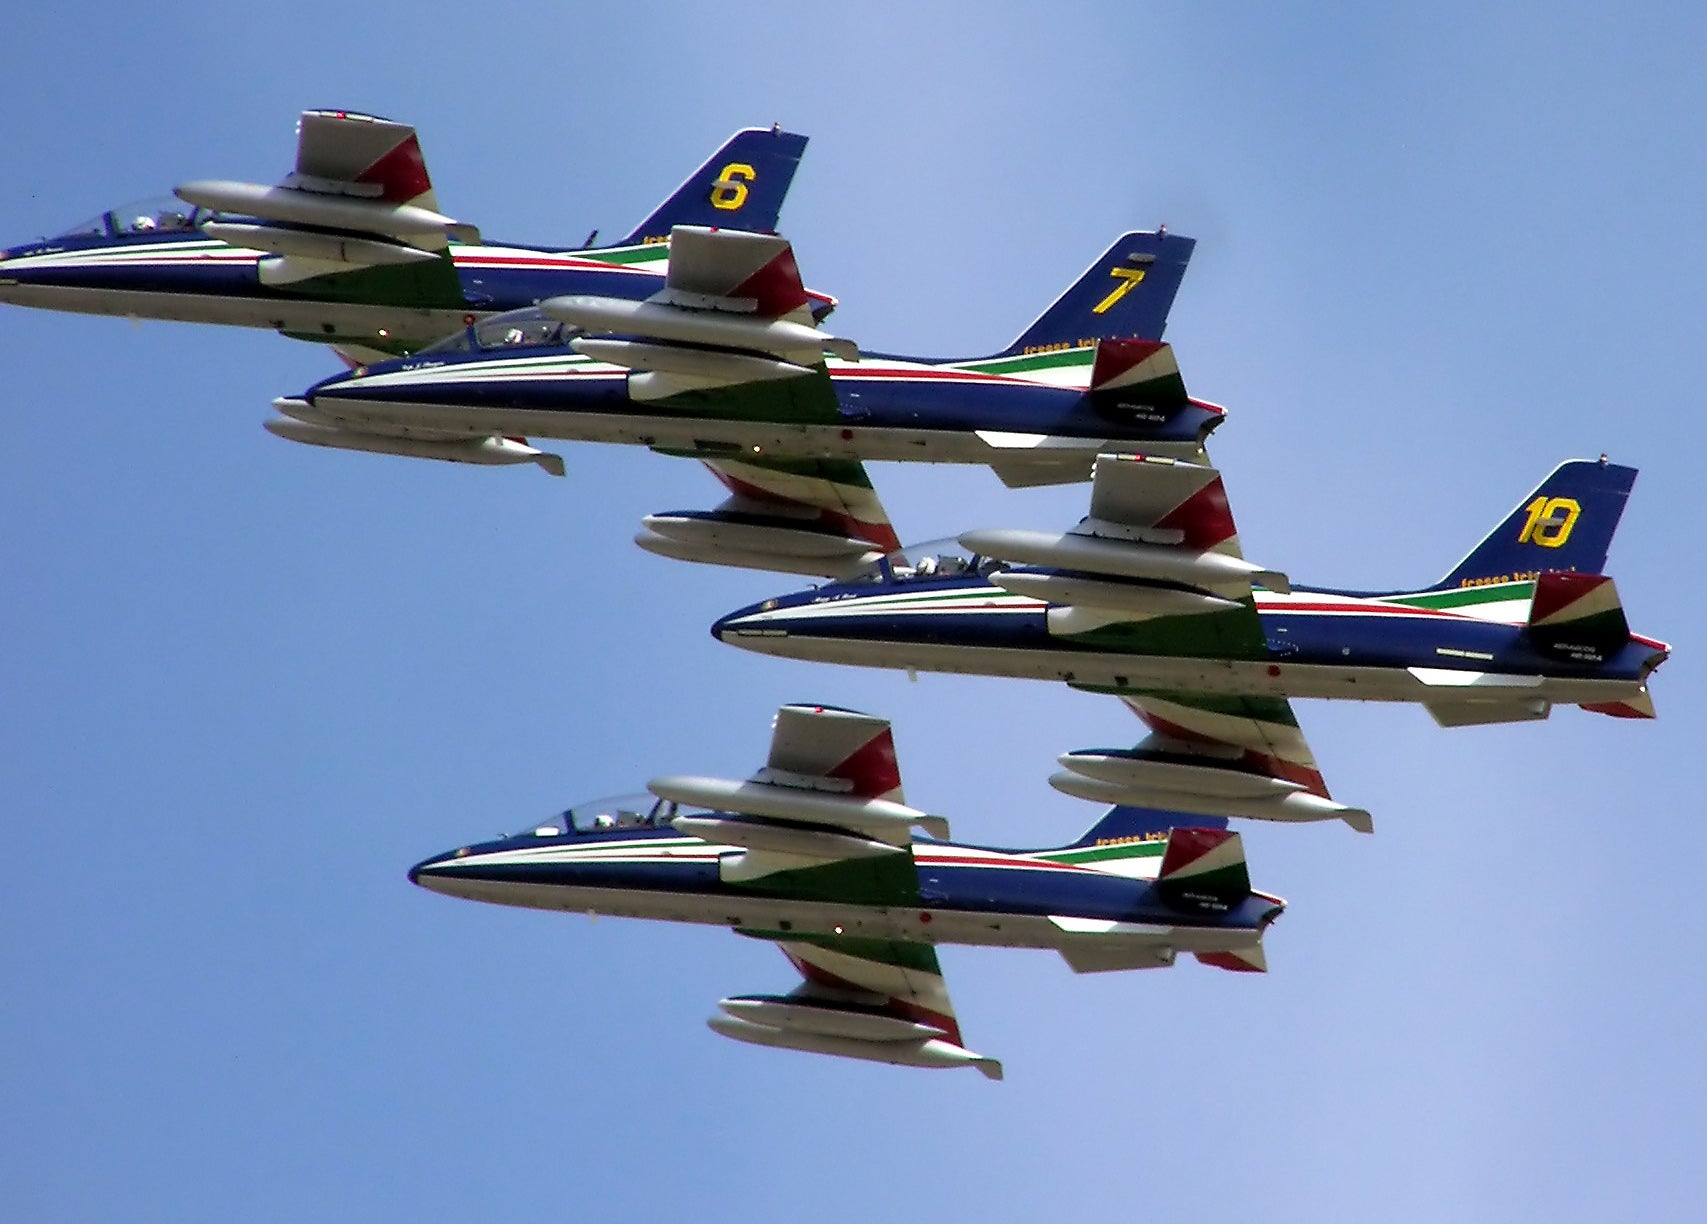 Watch seven jets landing in perfect formation